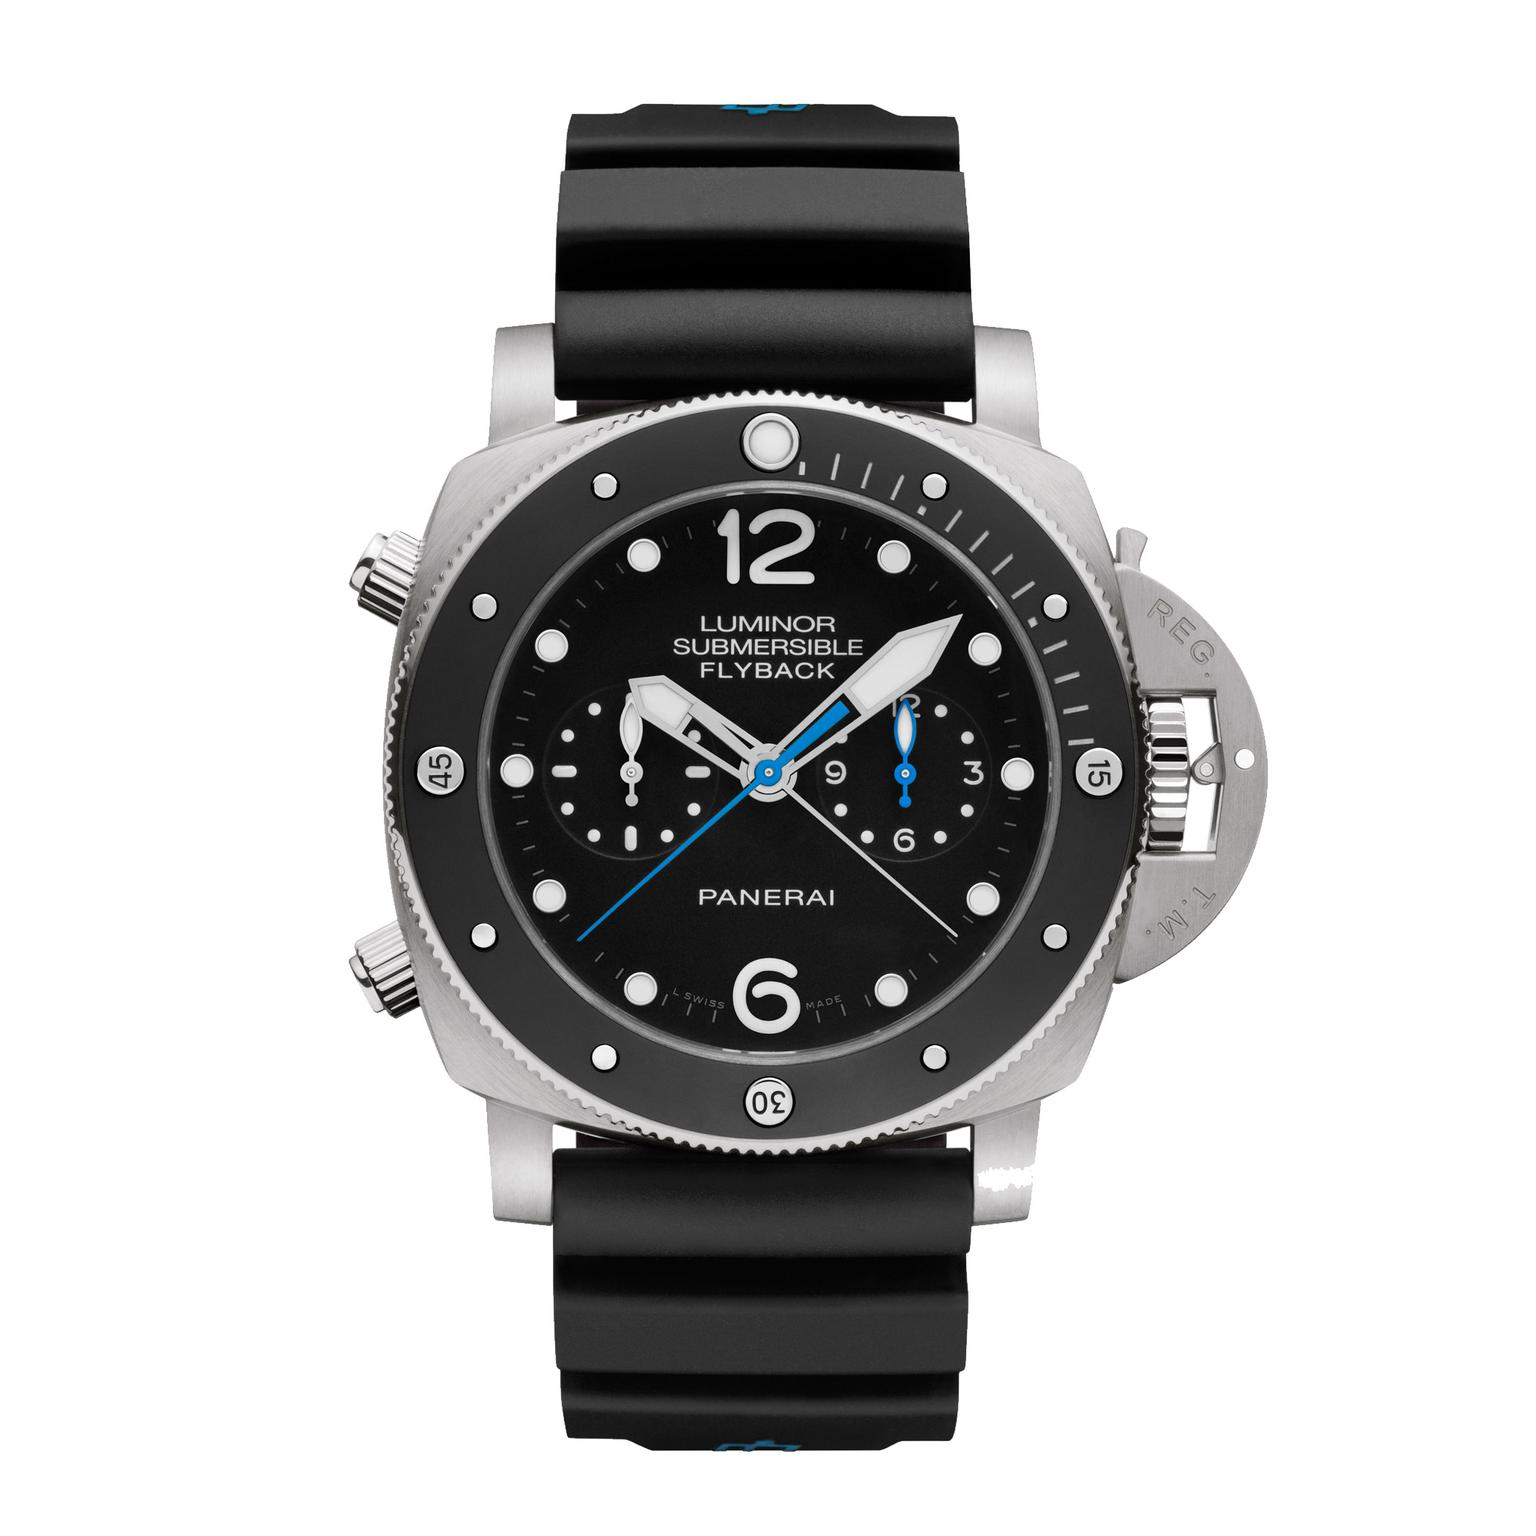 Panerai Luminor Submersible Flyback PAM615_zoom